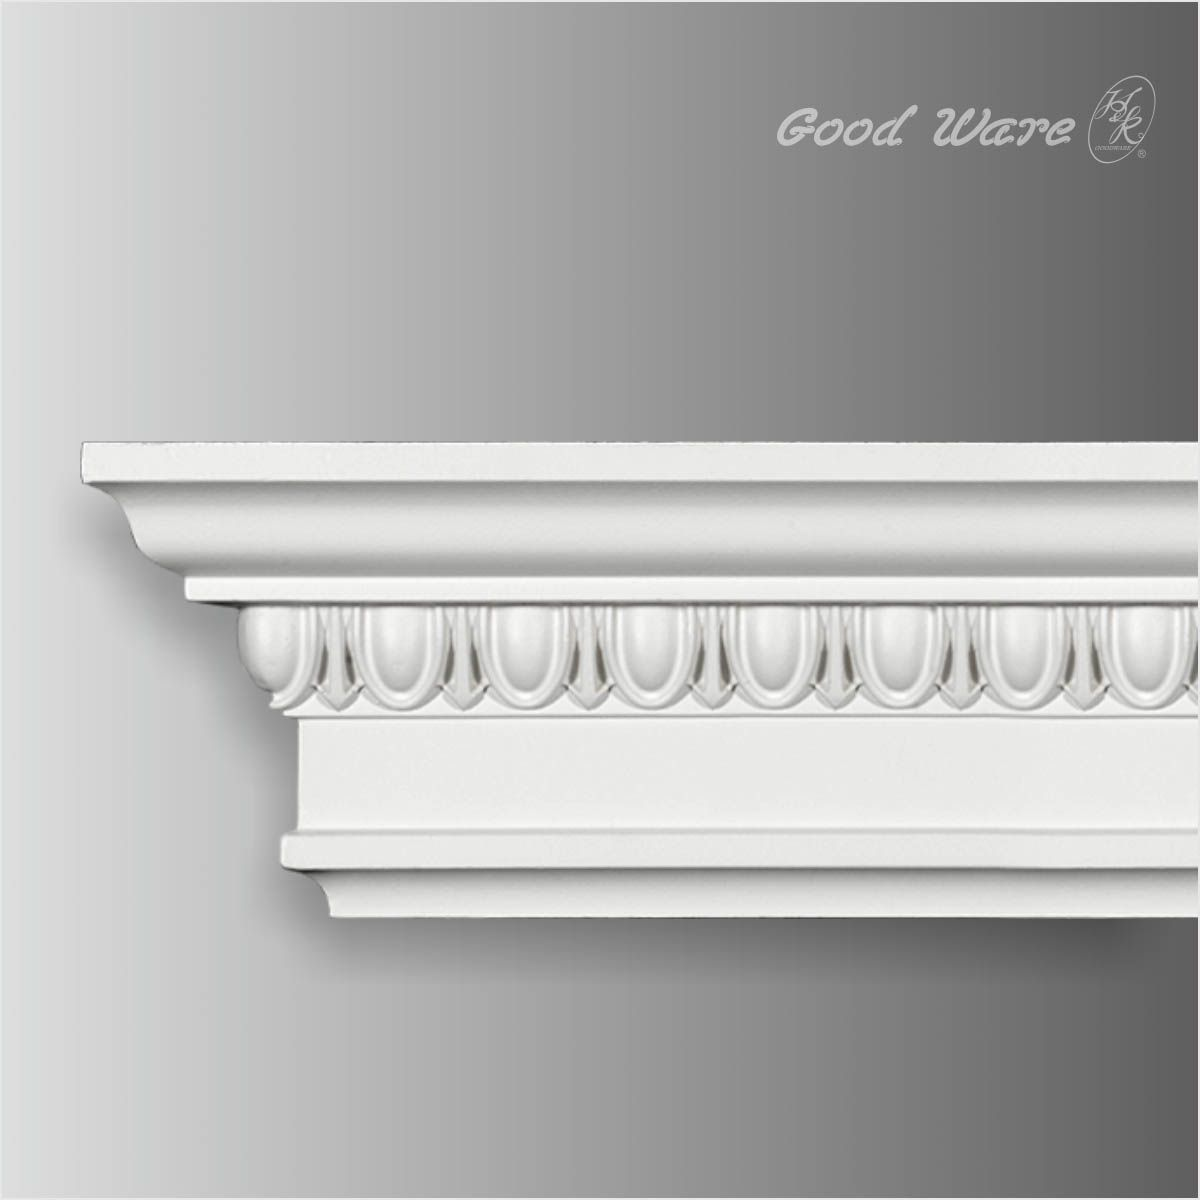 Polyurethane Egg And Dart Crown Molding Is Petite In Its Measurements But It Still Has A Powerful Design That E Crown Molding Cornice Design Moldings And Trim